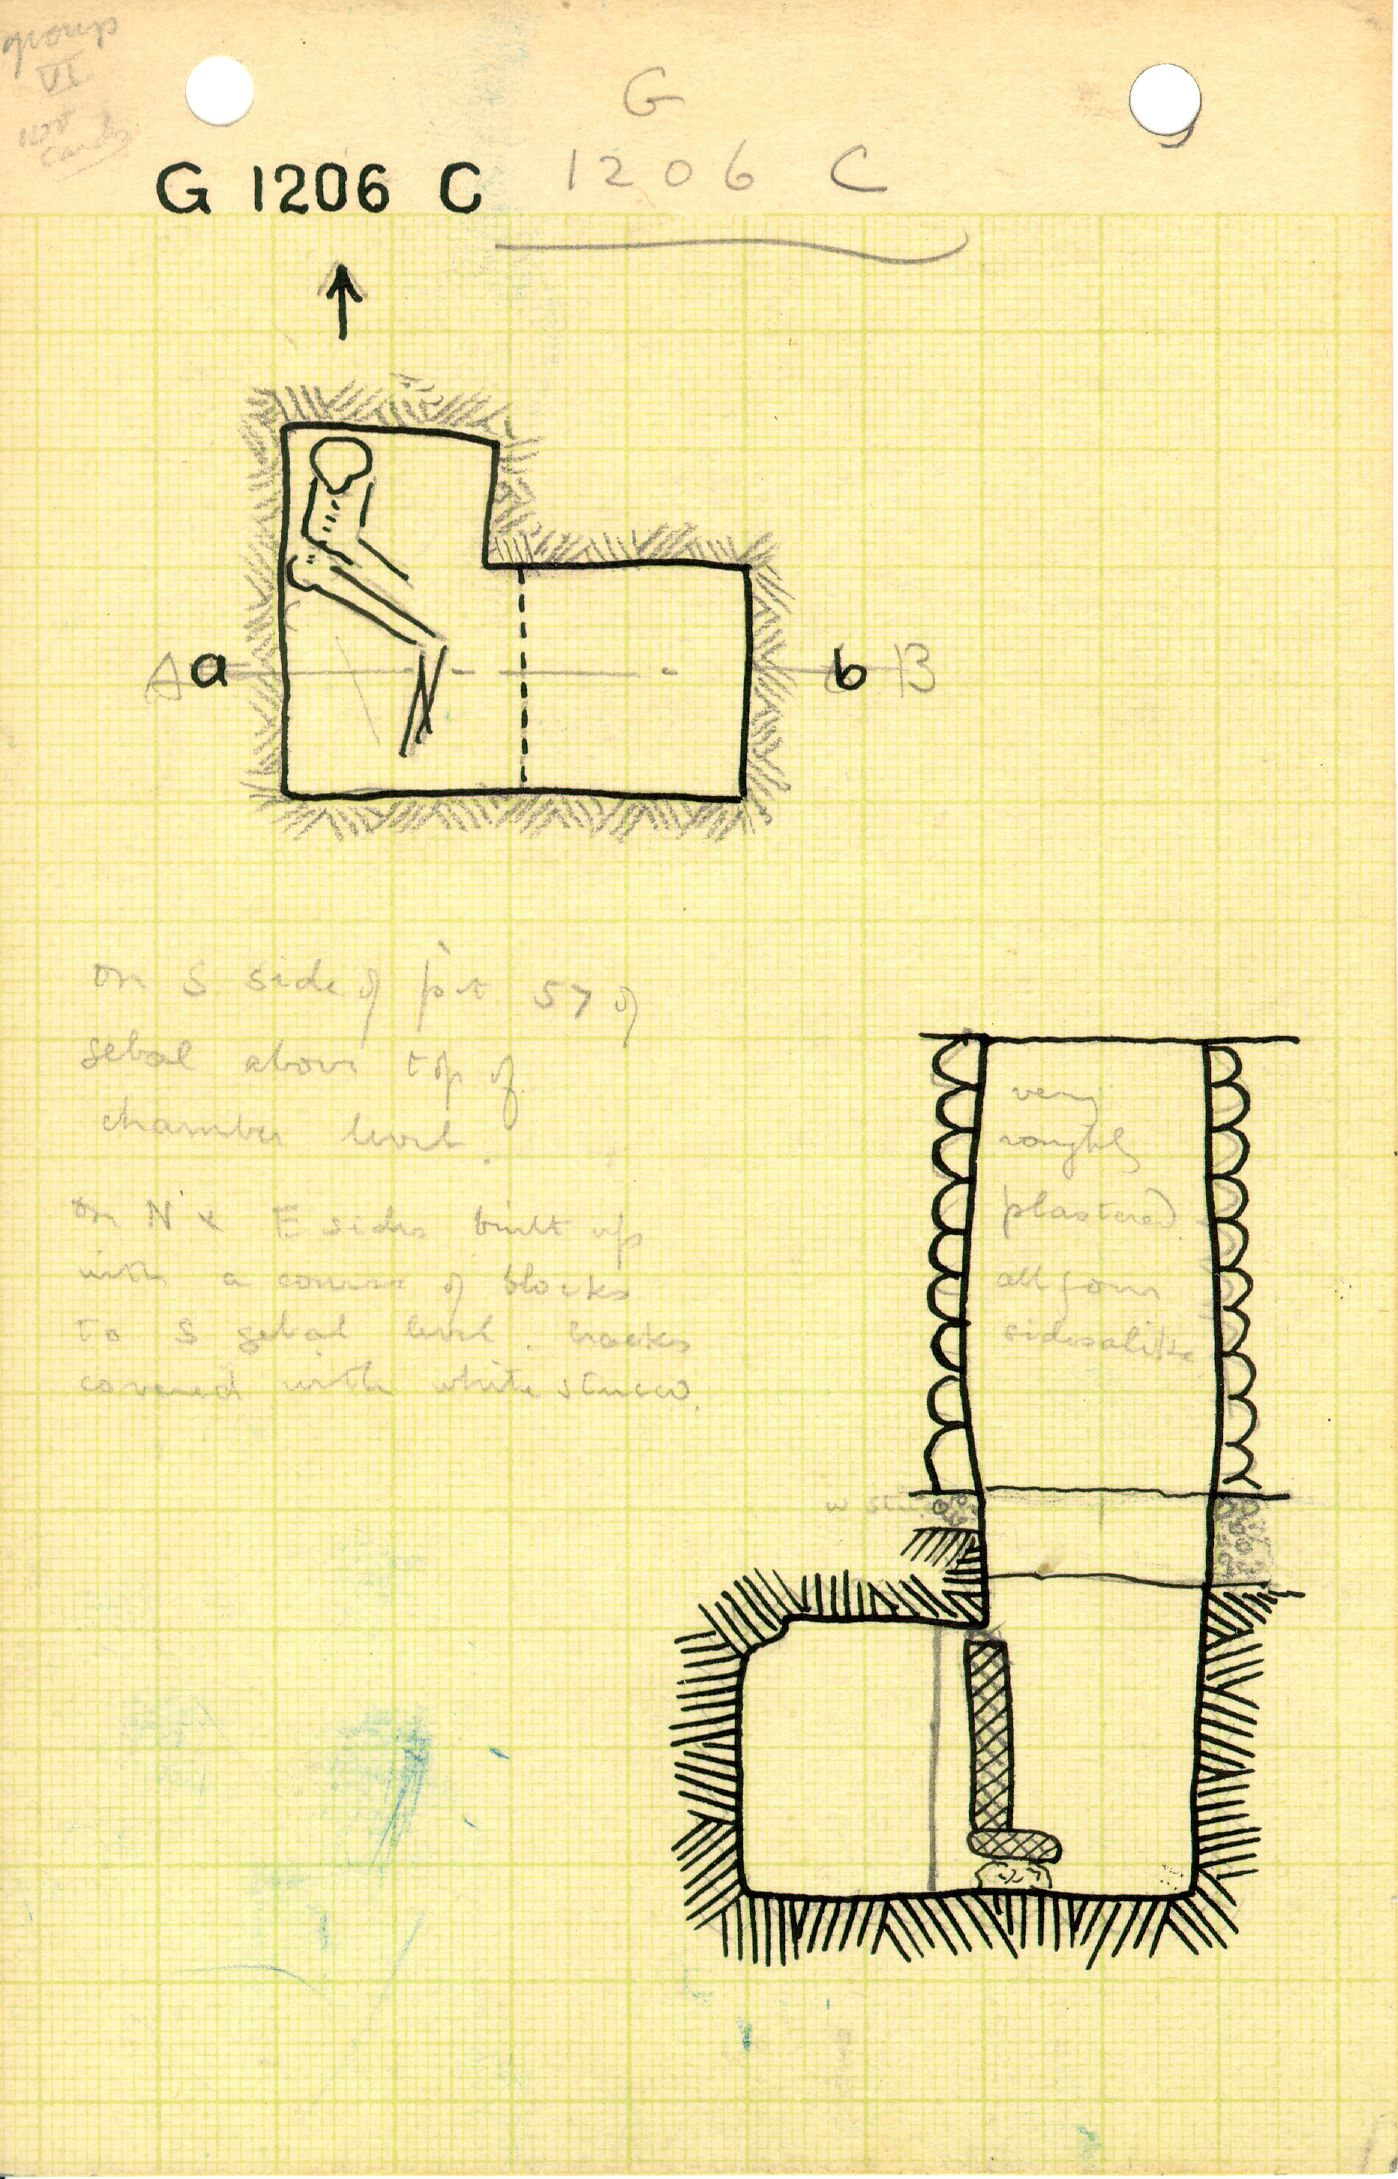 Maps and plans: G 1206, Shaft C